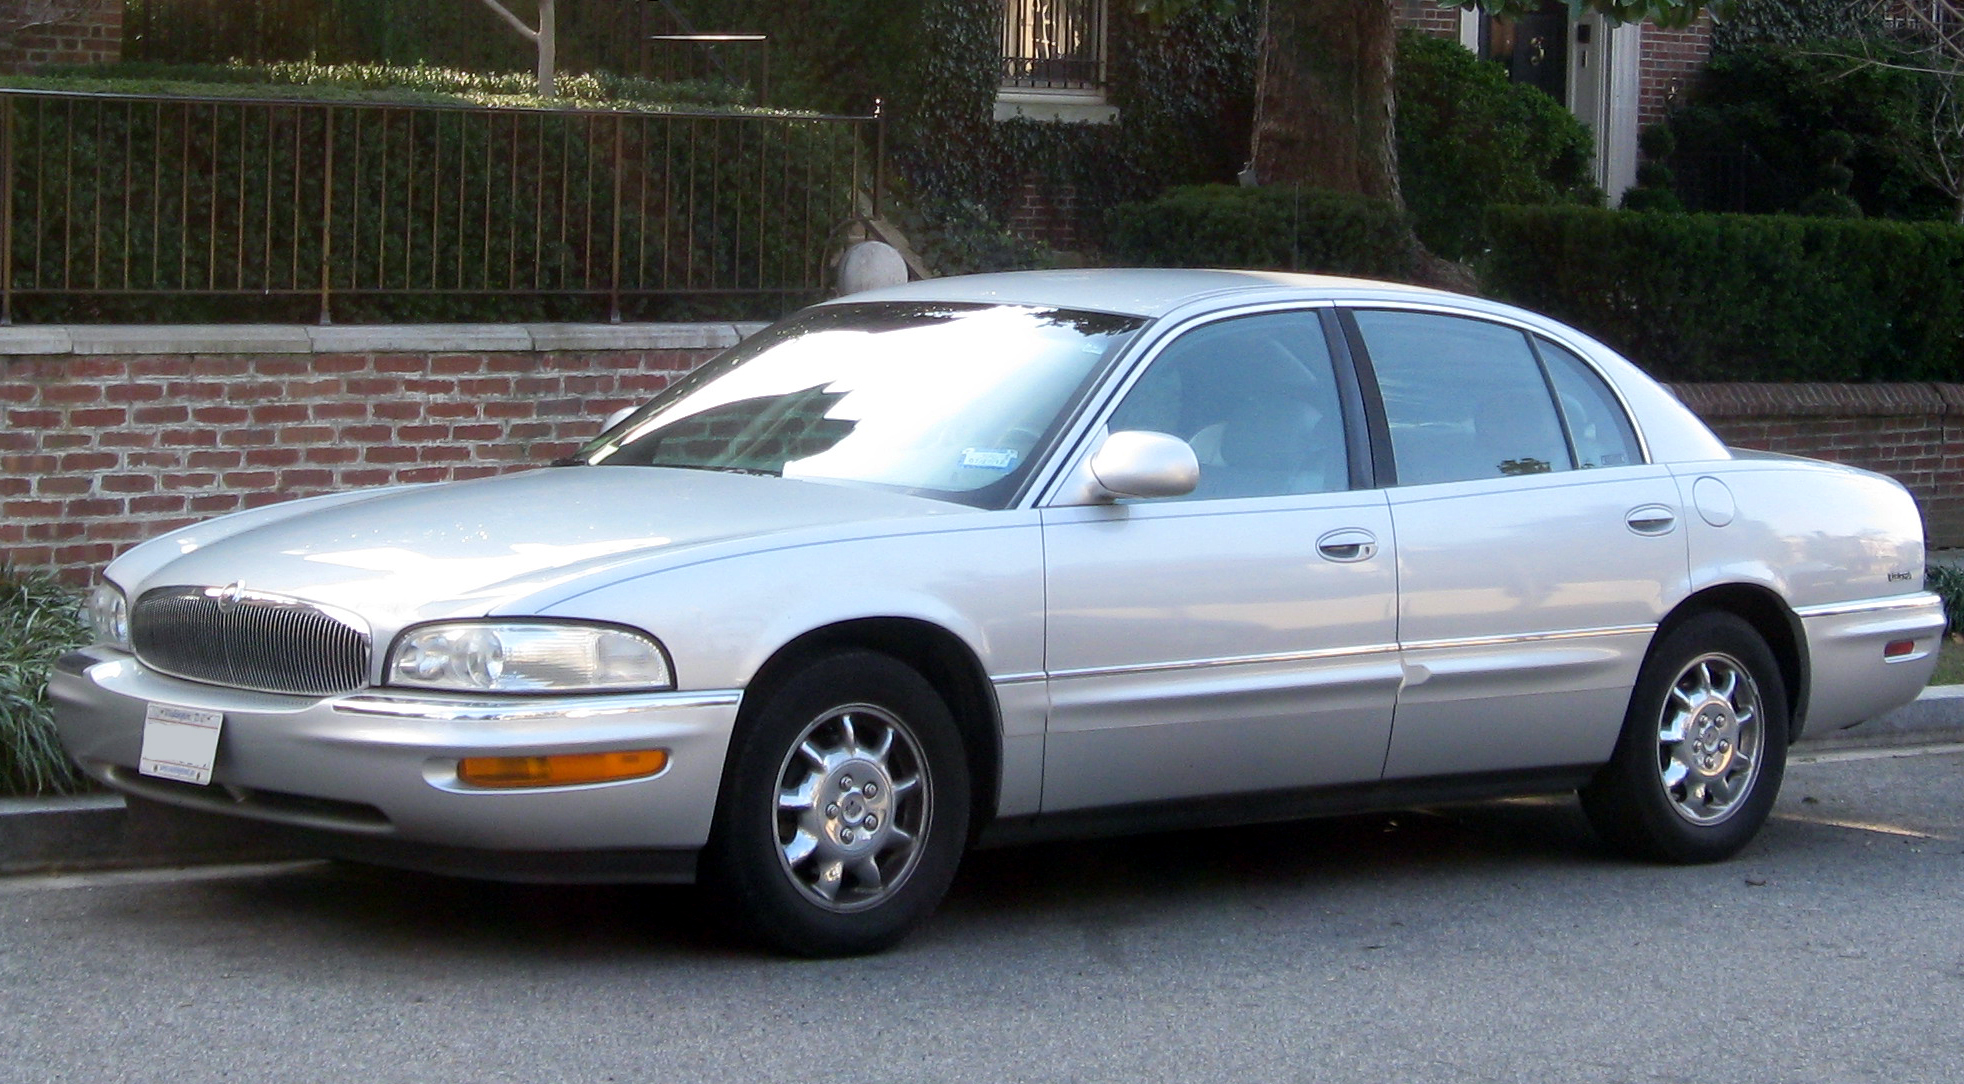 1997 Buick Park Avenue White 200 Interior And Exterior